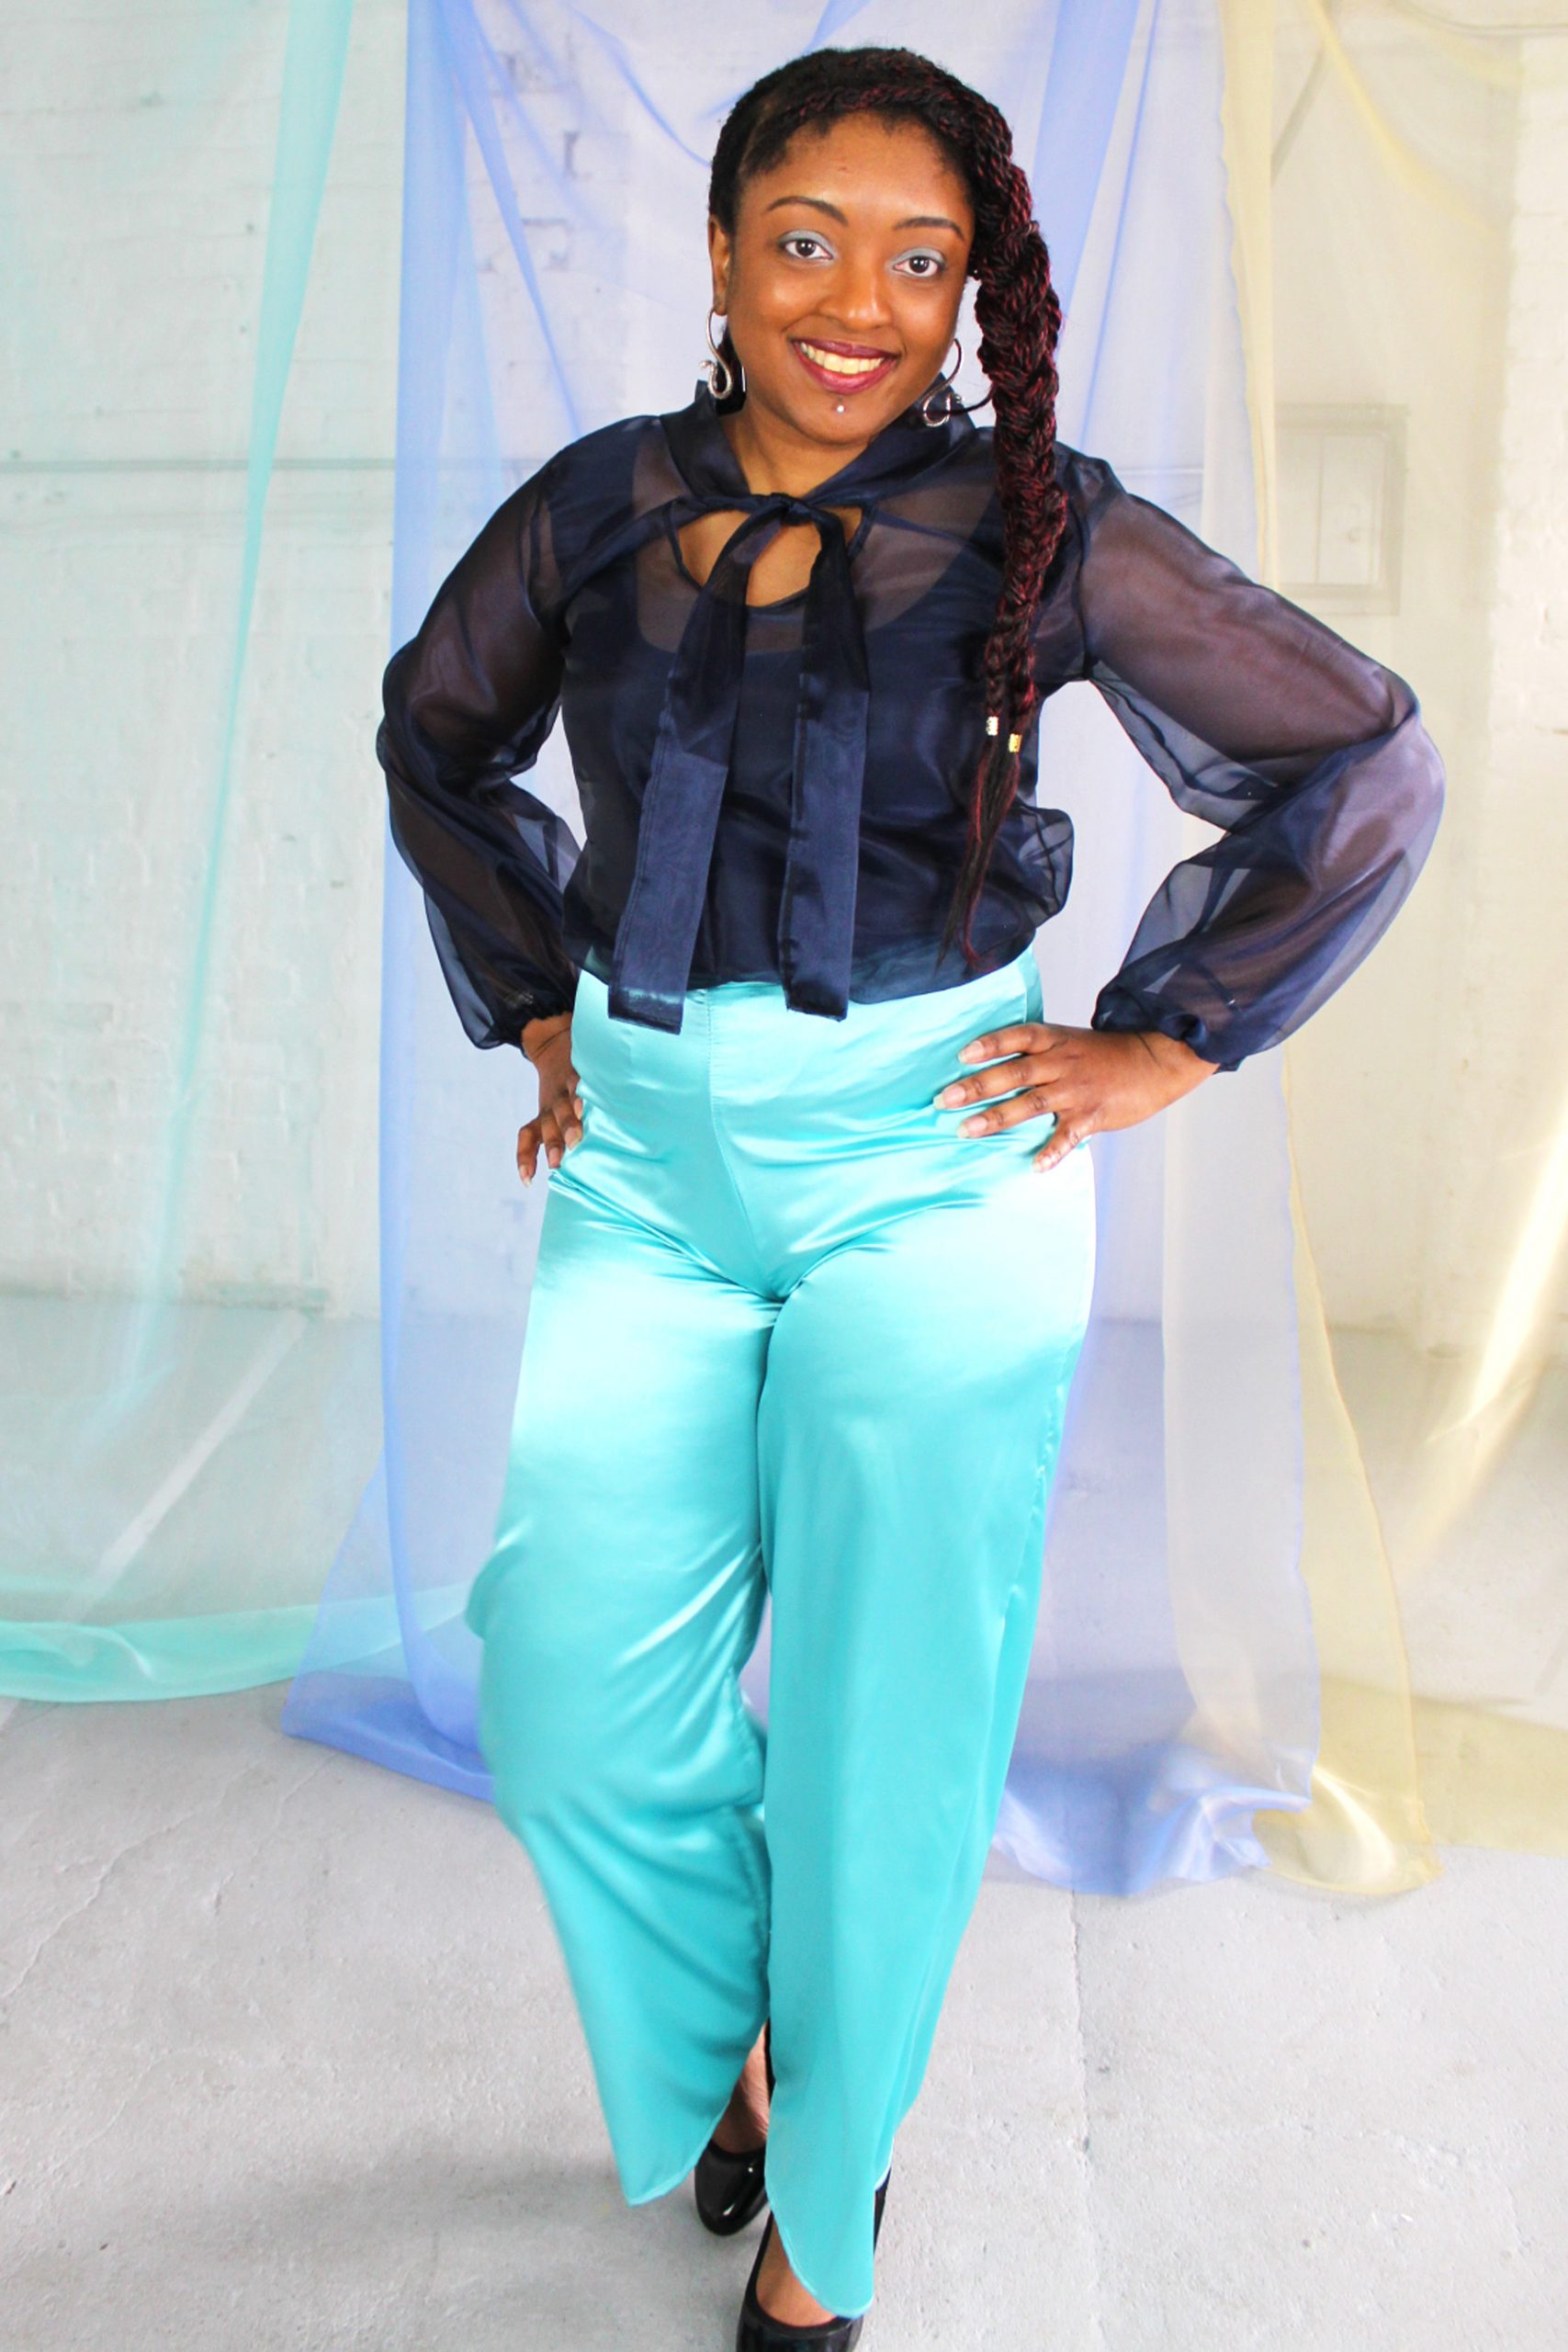 Straight size black model with braided hair wearing navy organza blouse with neck tie + bell sleeves with seafoam satin pants